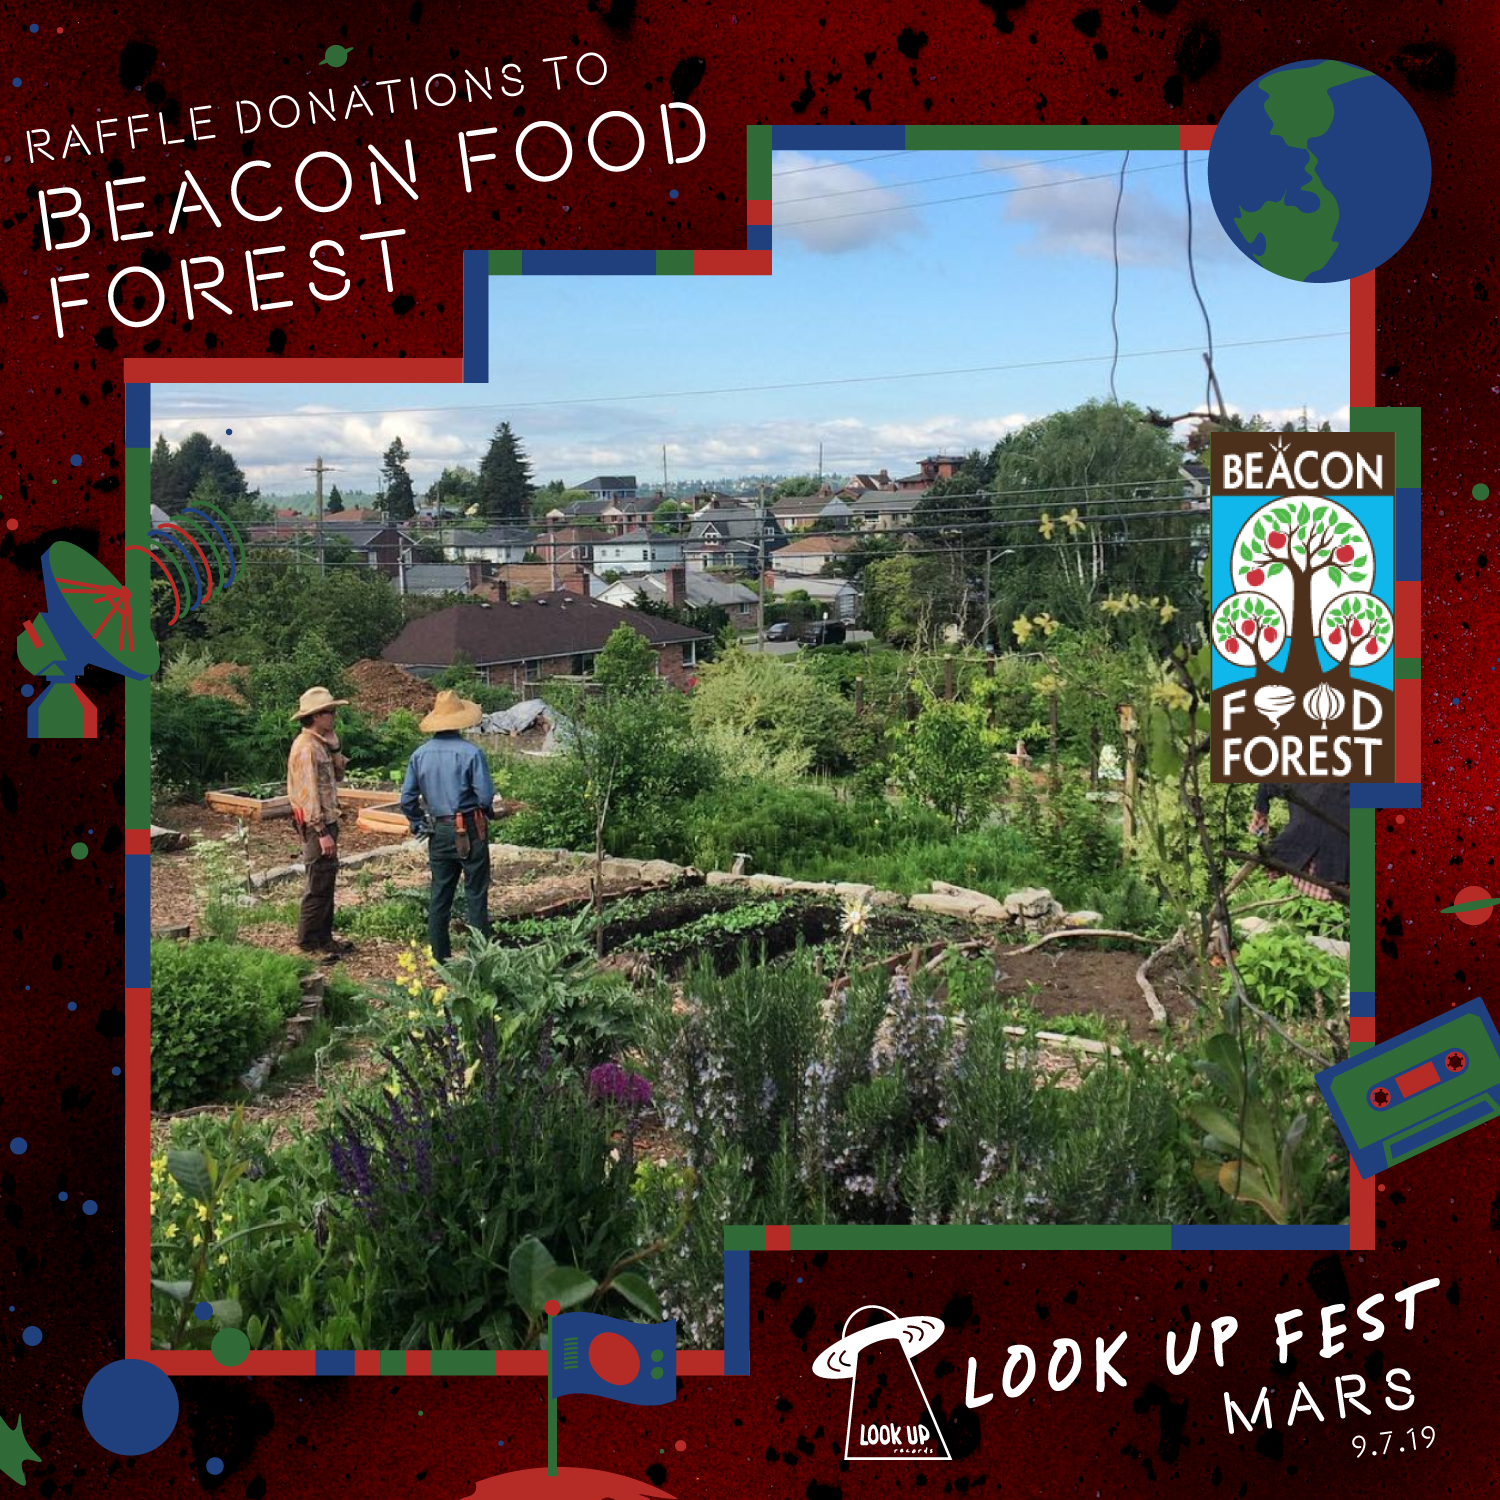 BEACON FOOD FOREST - Before we terraform Mars, there's a lot we can do to improve living ecosystems on Earth. For this event, our raffle will be raising funds for the Beacon Food Forest (BFF). The BFF is a unique open harvest model, a community-supported urban garden that's completely open to the public to forage. Their mission: